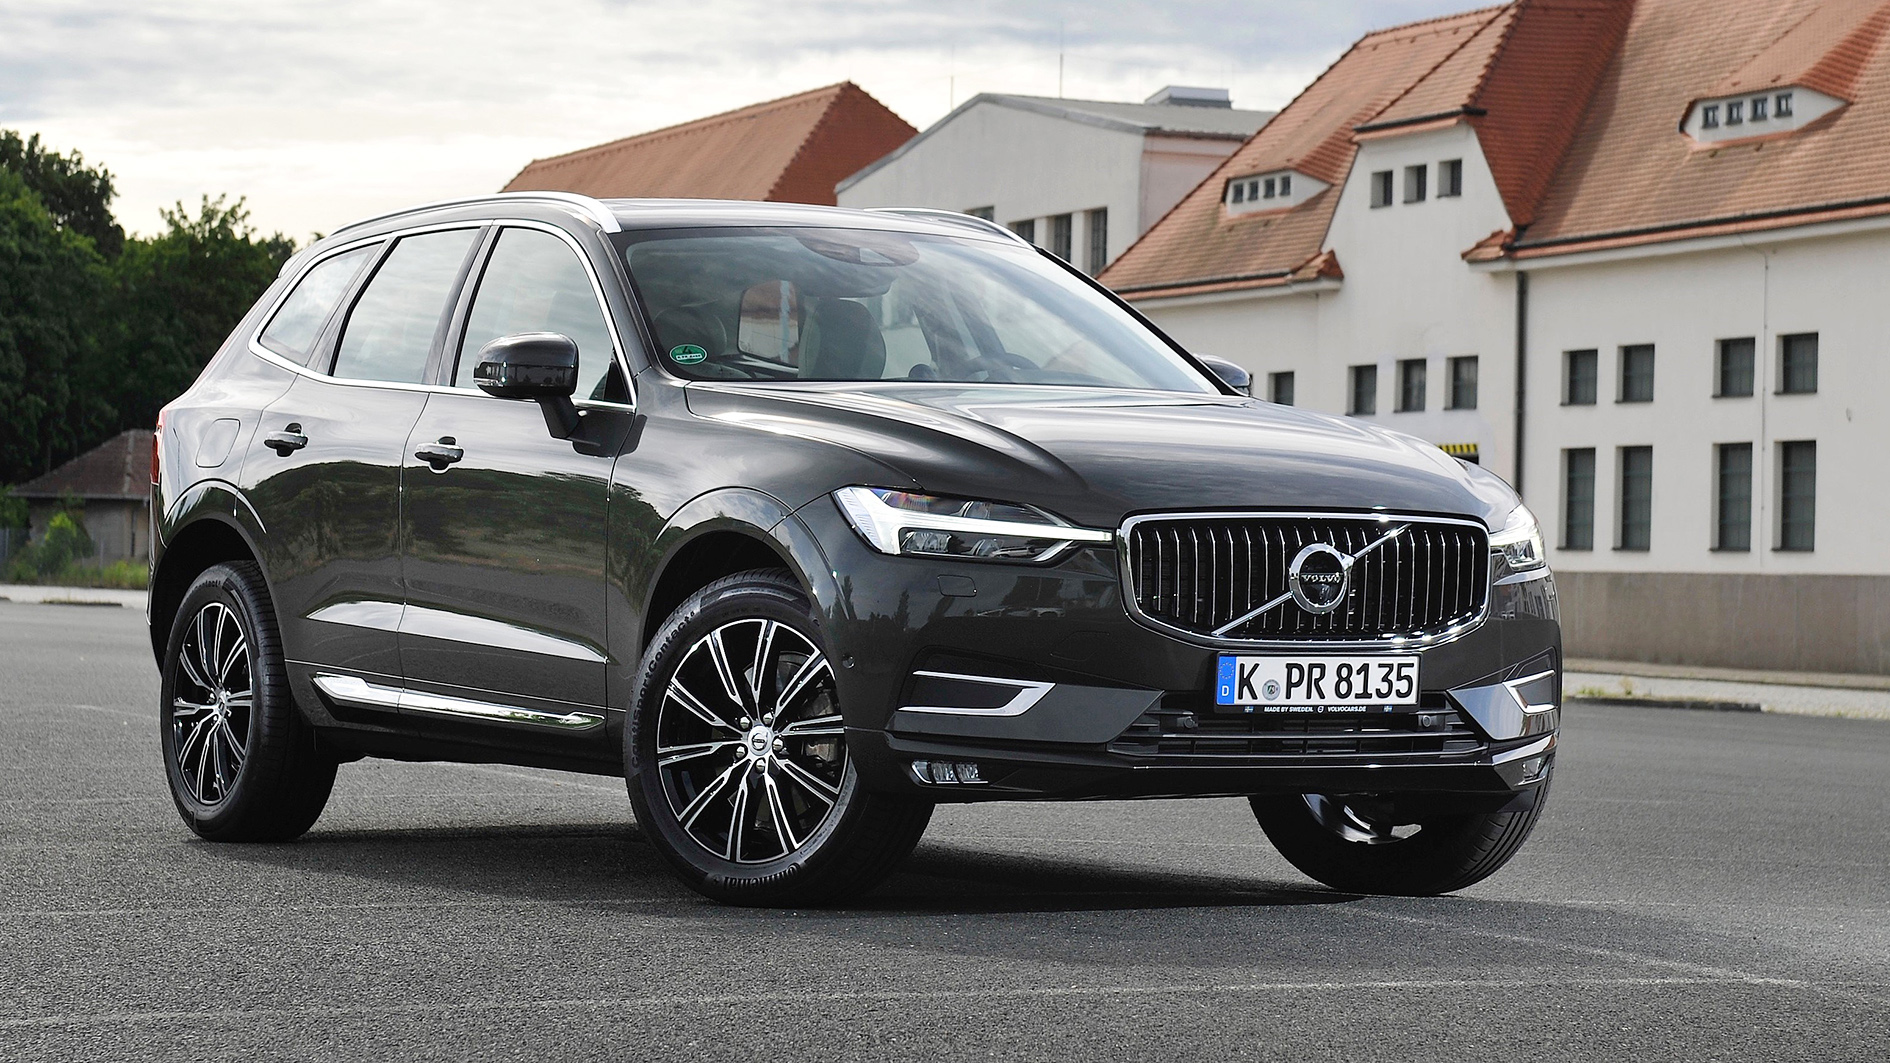 volvo xc60 d5 awd 173 kw 235 hp review test drive 2017 drive report english. Black Bedroom Furniture Sets. Home Design Ideas